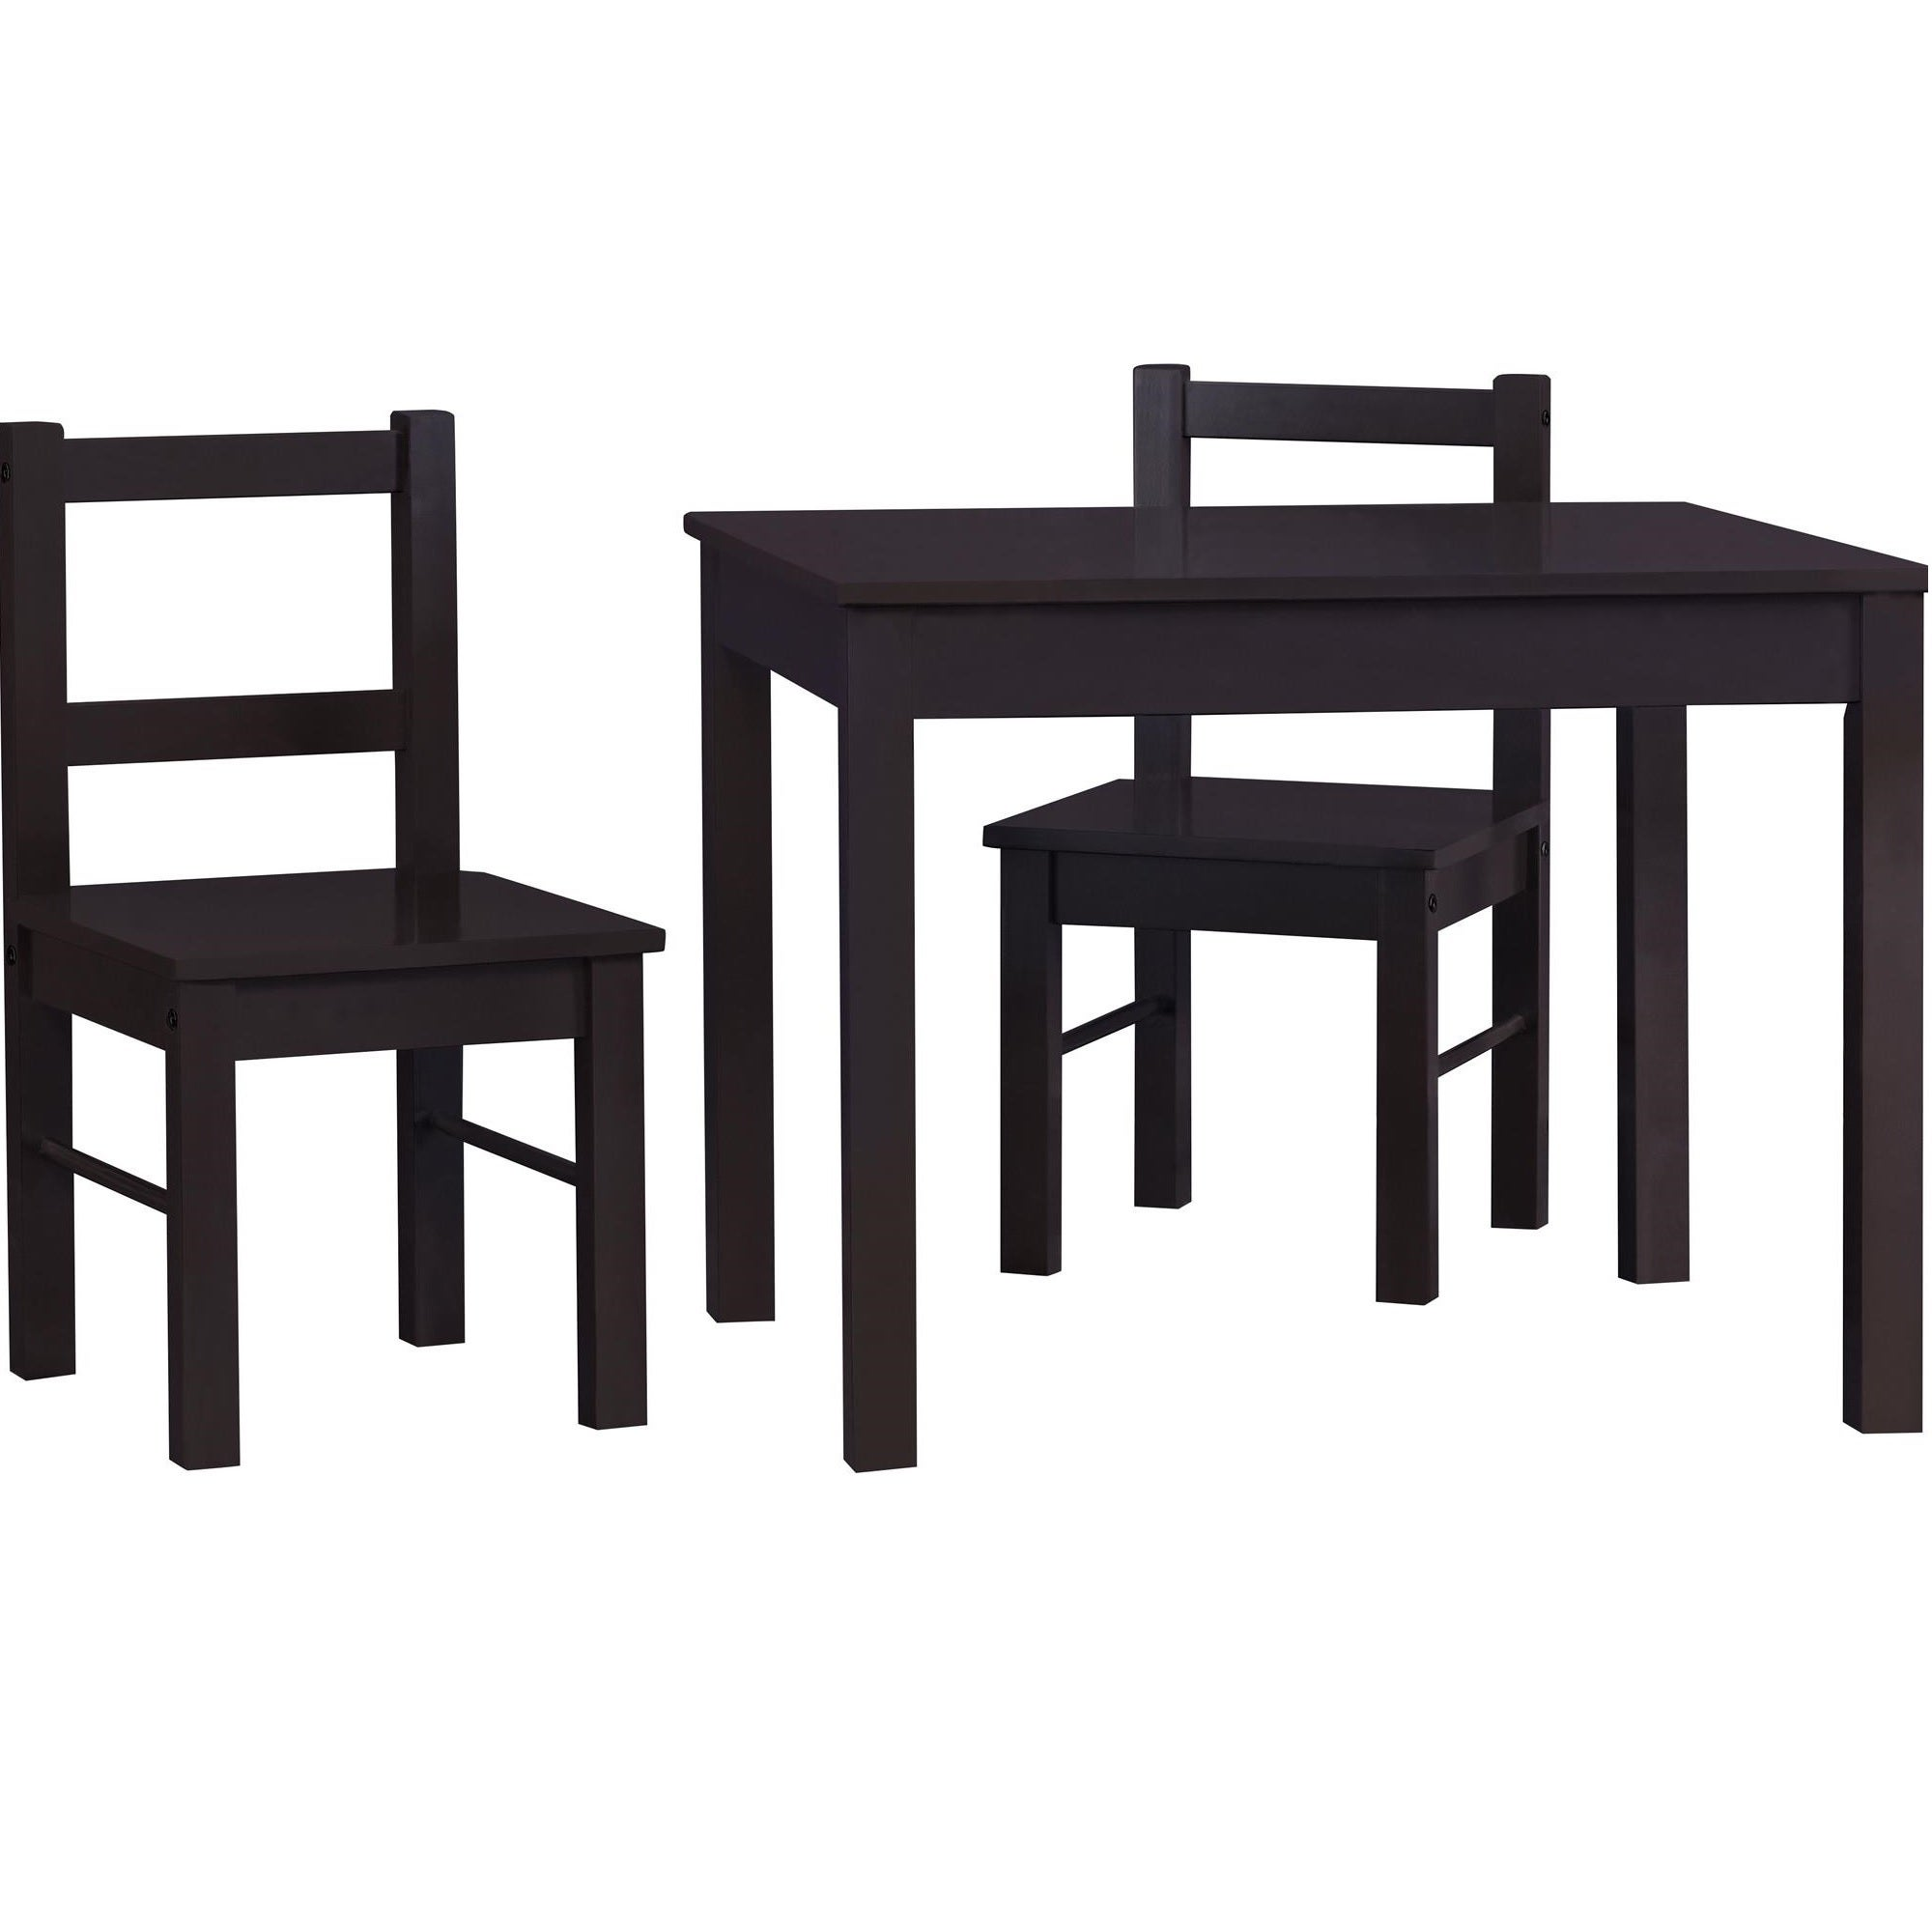 Exceptional Ameriwood Home Hazel Kids Table And Chair 3 Piece Set By Cosco   Free  Shipping Today   Overstock   17146999